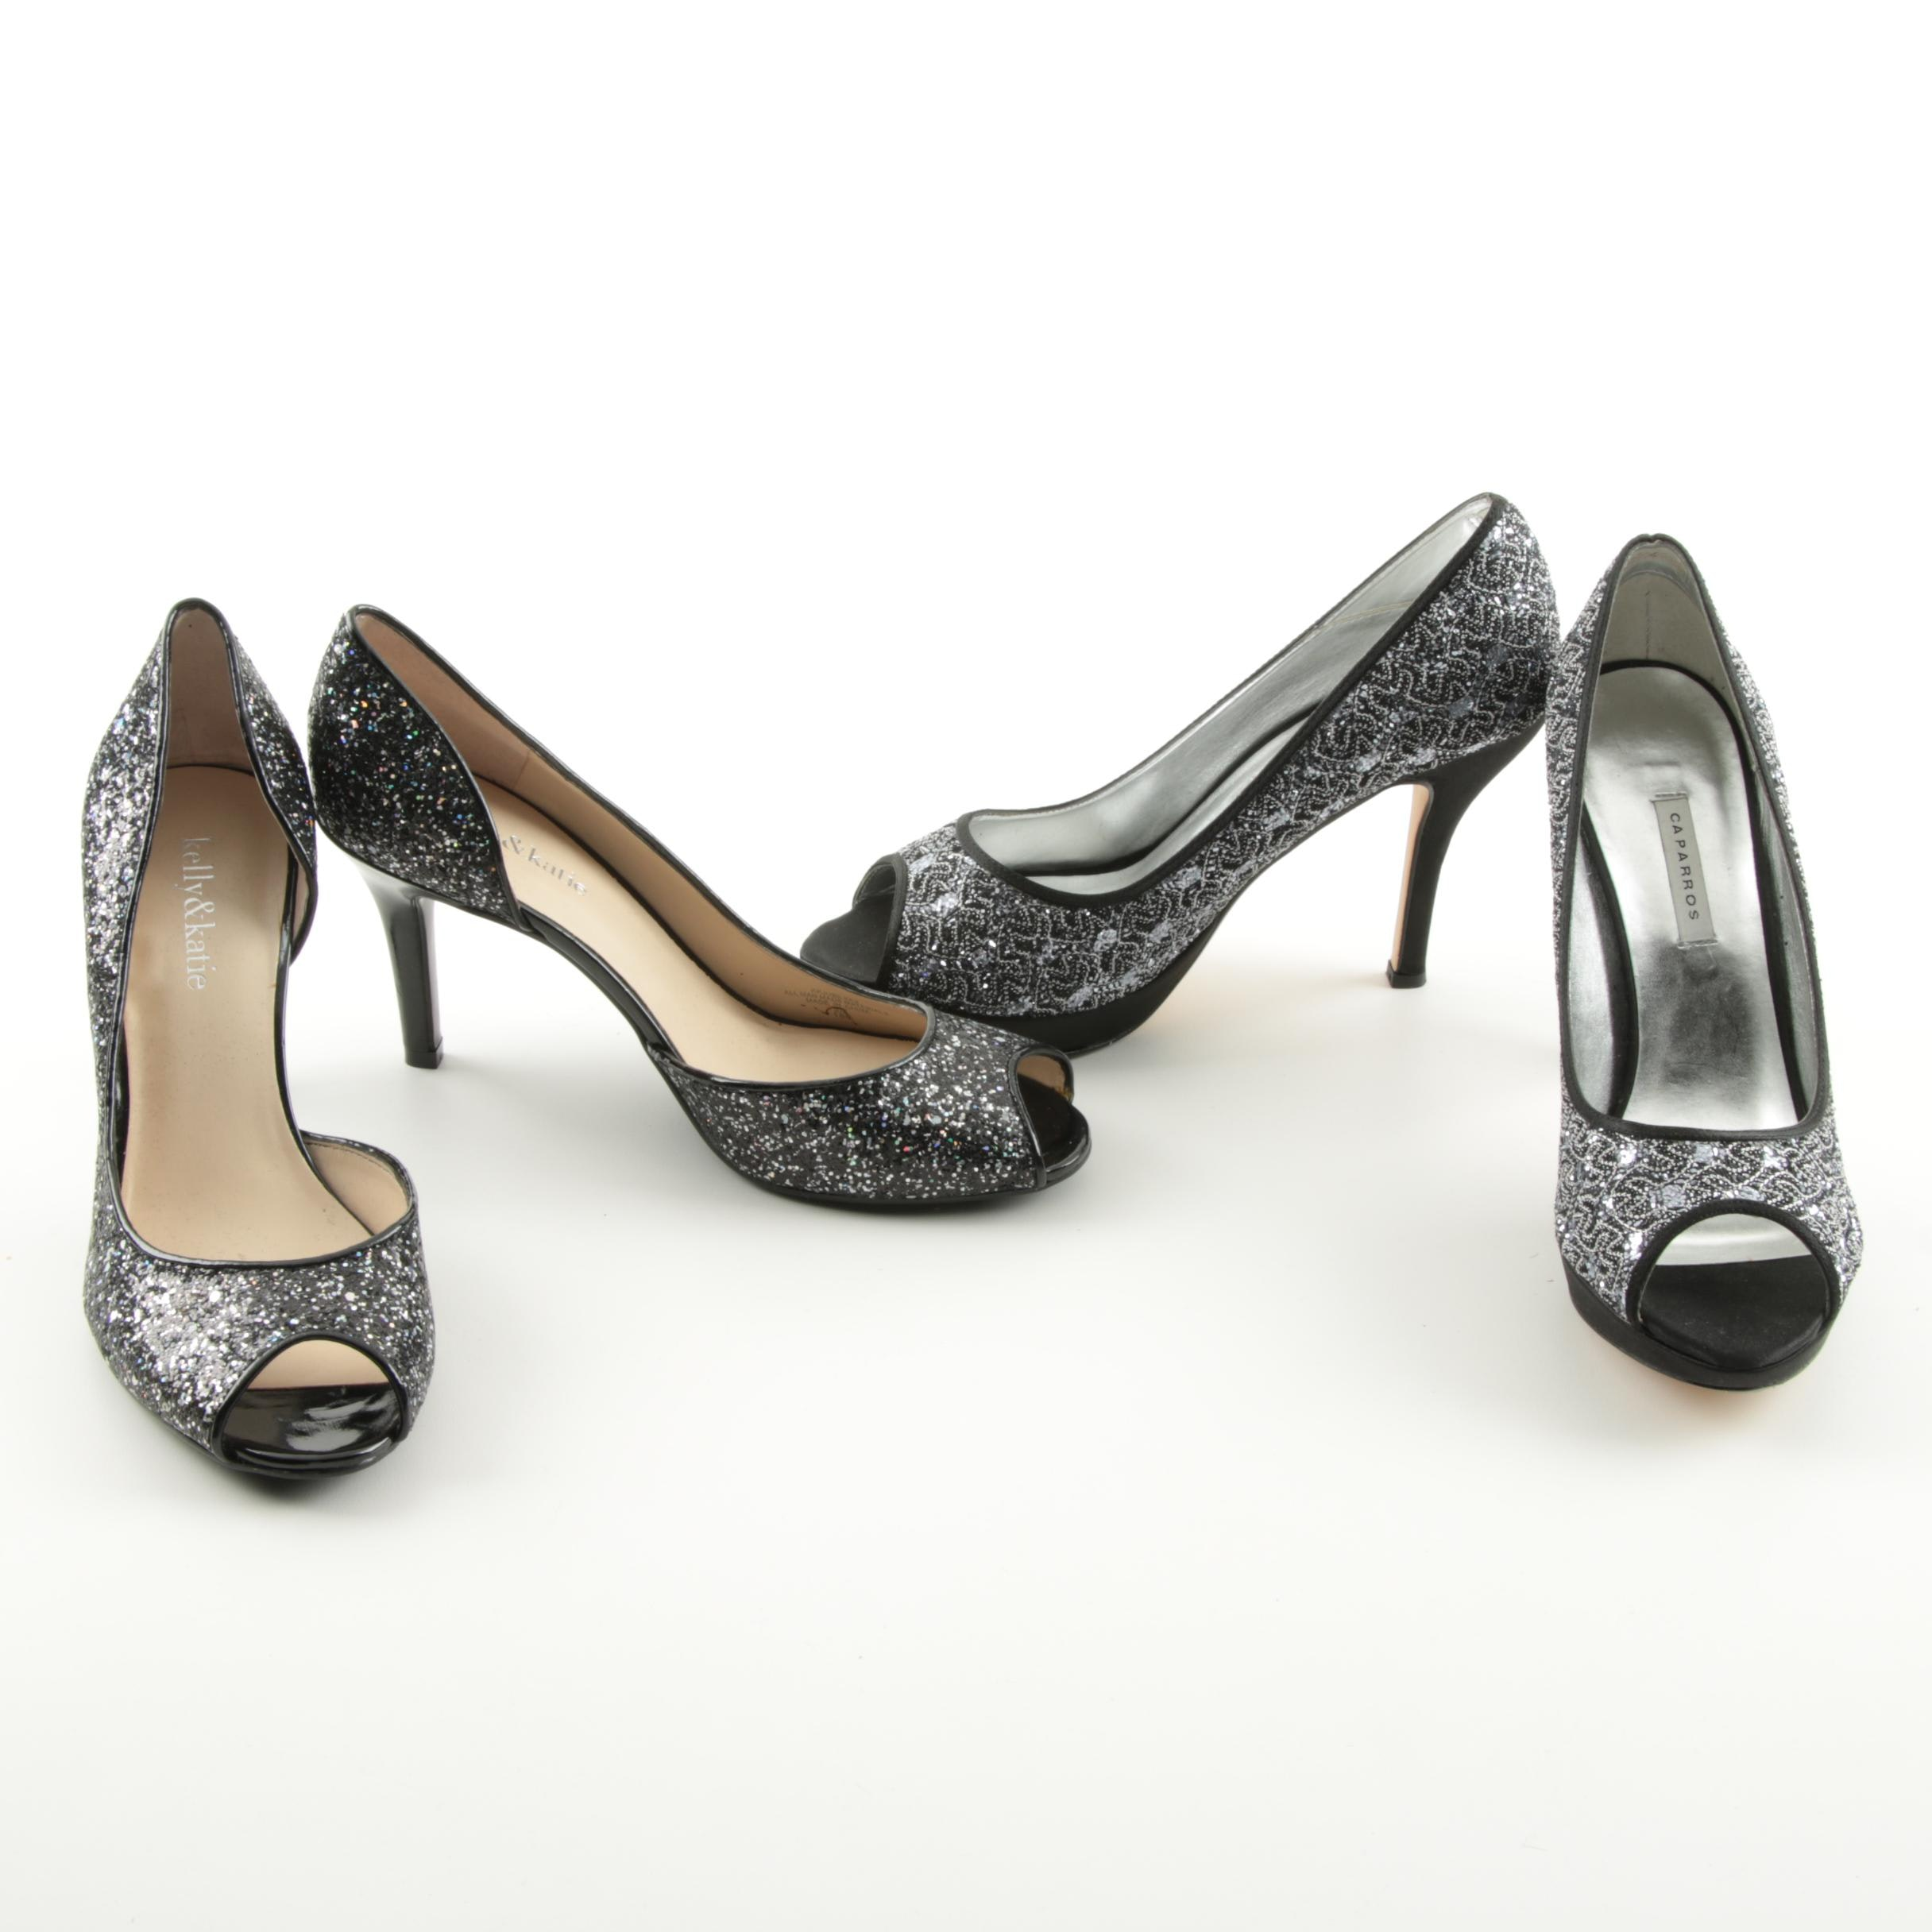 Embellished Peep Toe High Heels, Including Caparros